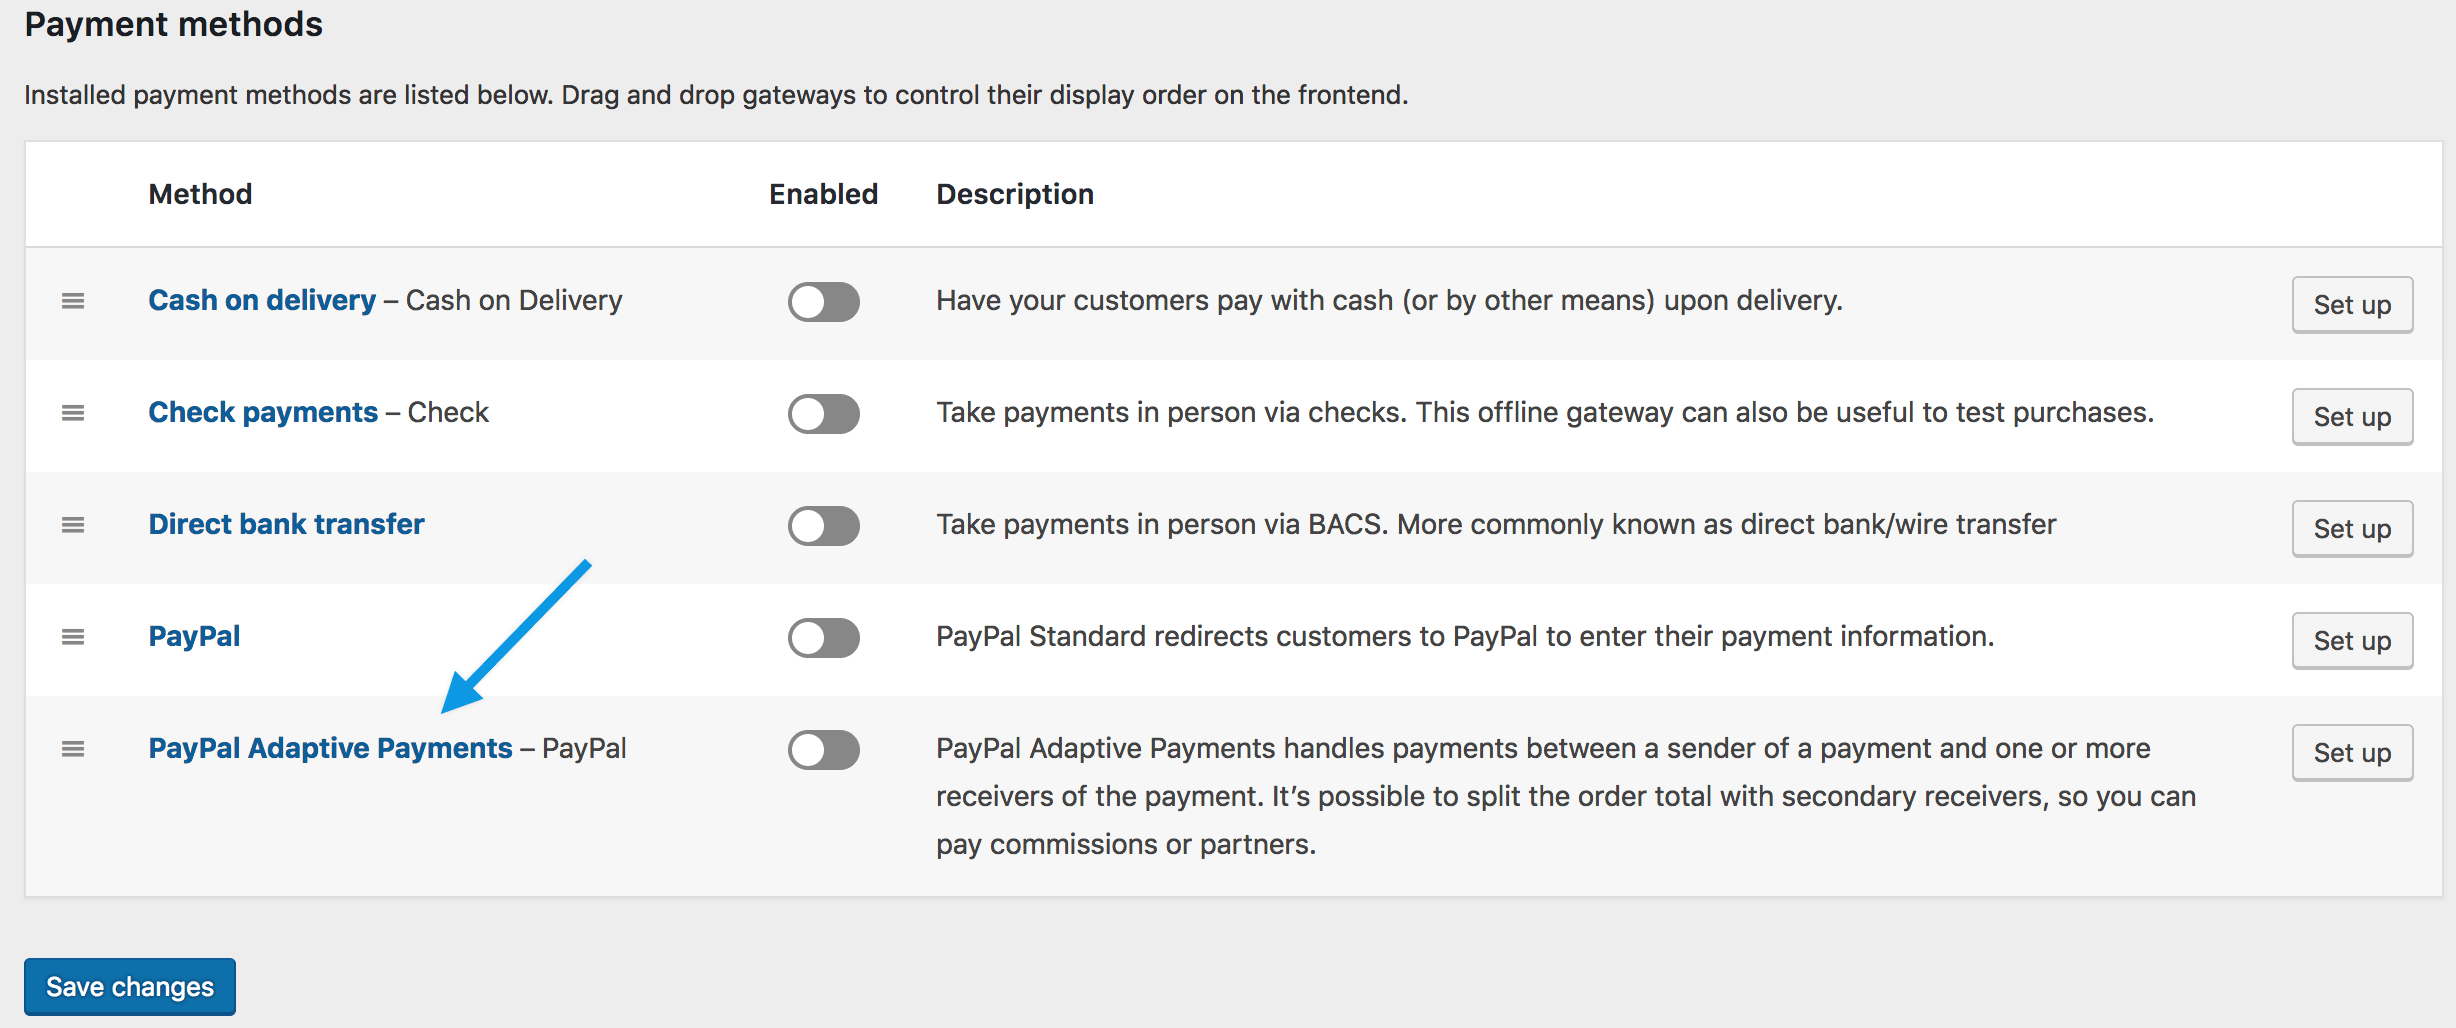 PayPal Adaptive Payments - WooCommerce Docs